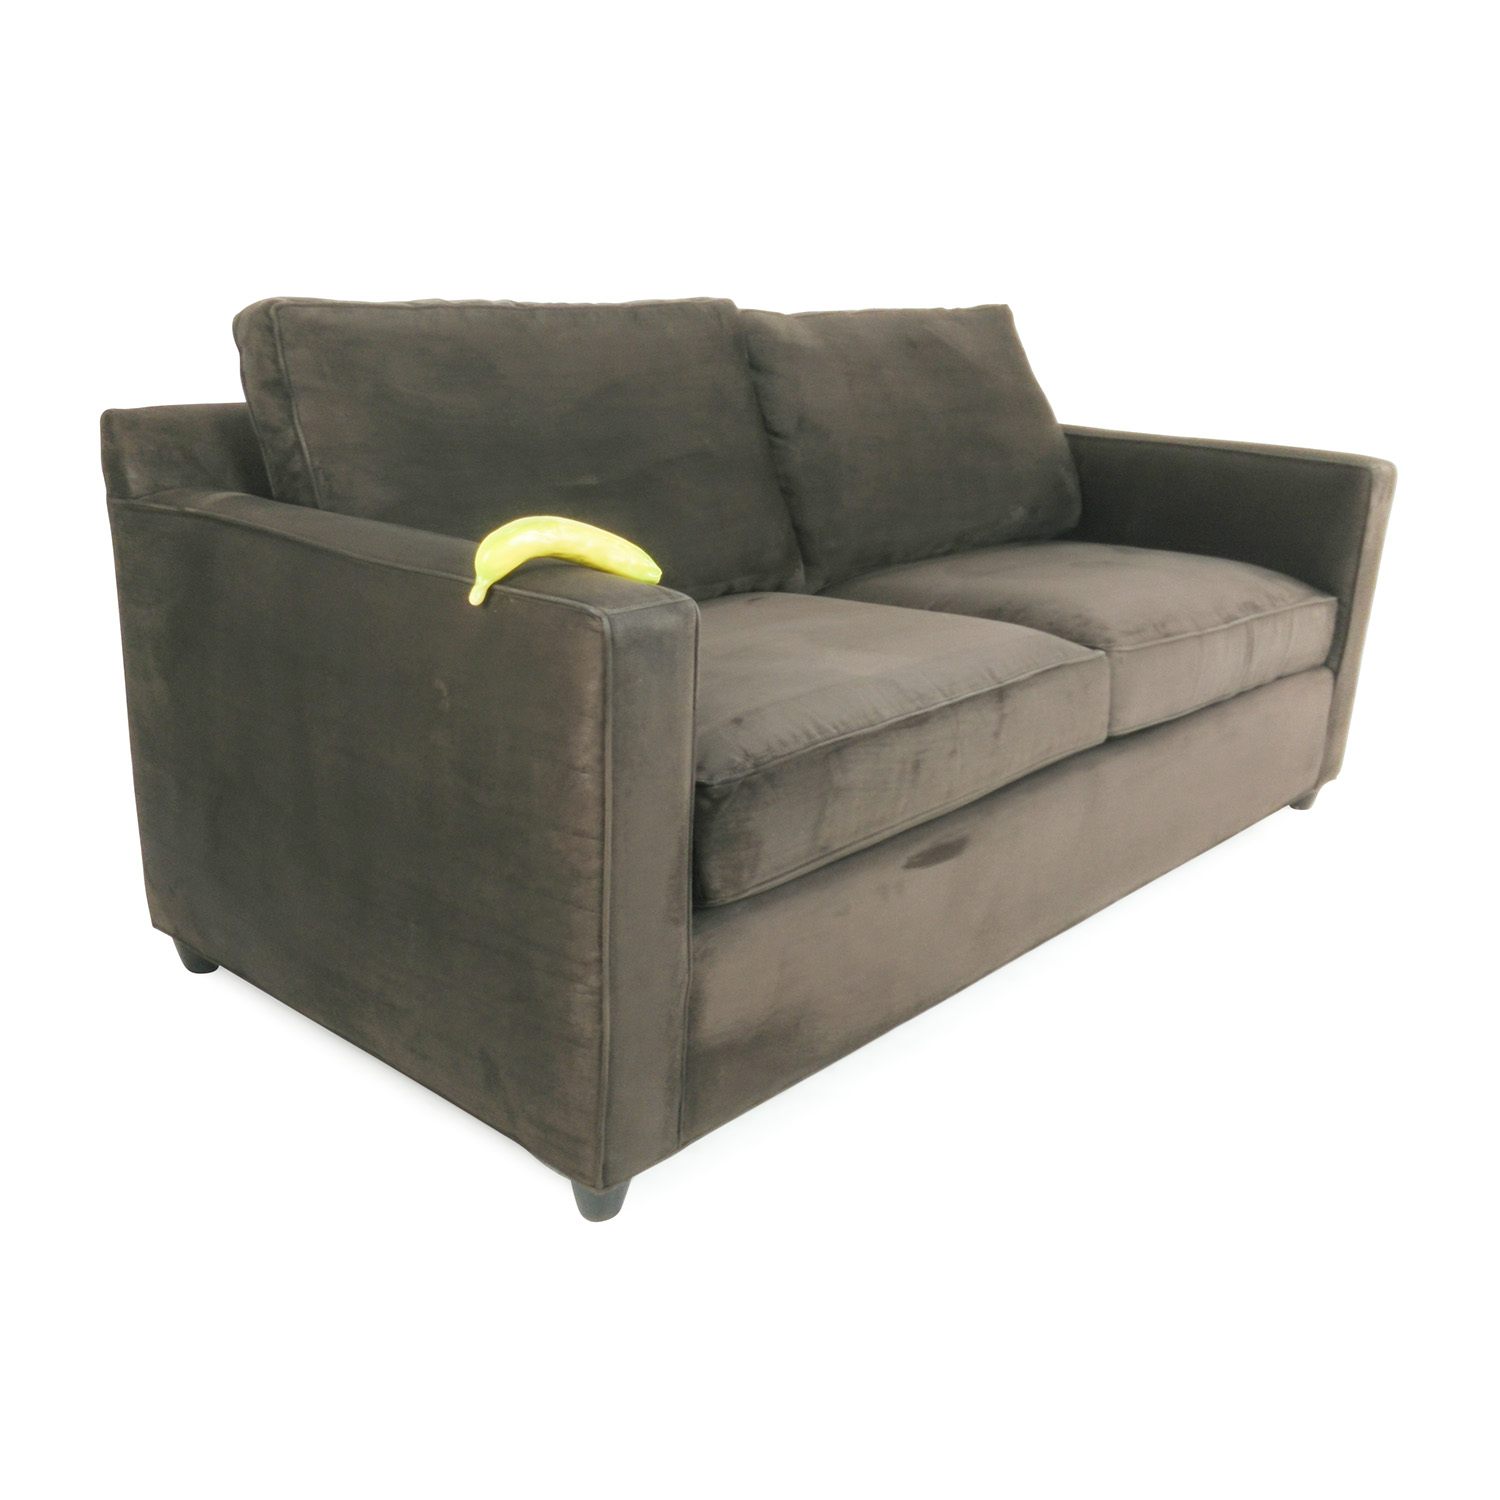 crate and barrel davis sofa leather comfort cloud bed pad 57 off sofas